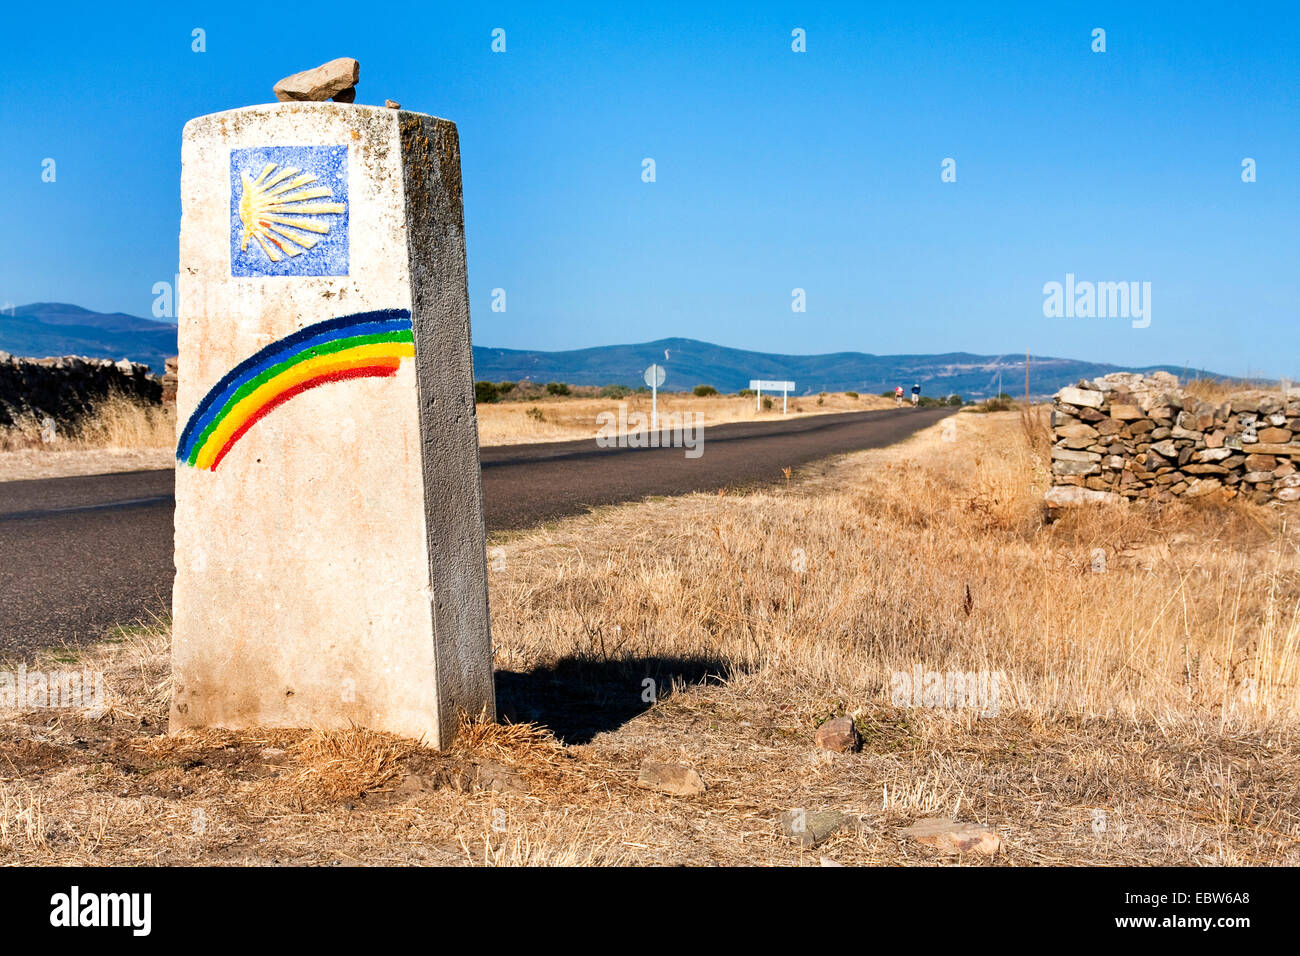 guidepost with rainbow an pilgrim's shell, Spain, Kastilien und Le�n - Stock Image